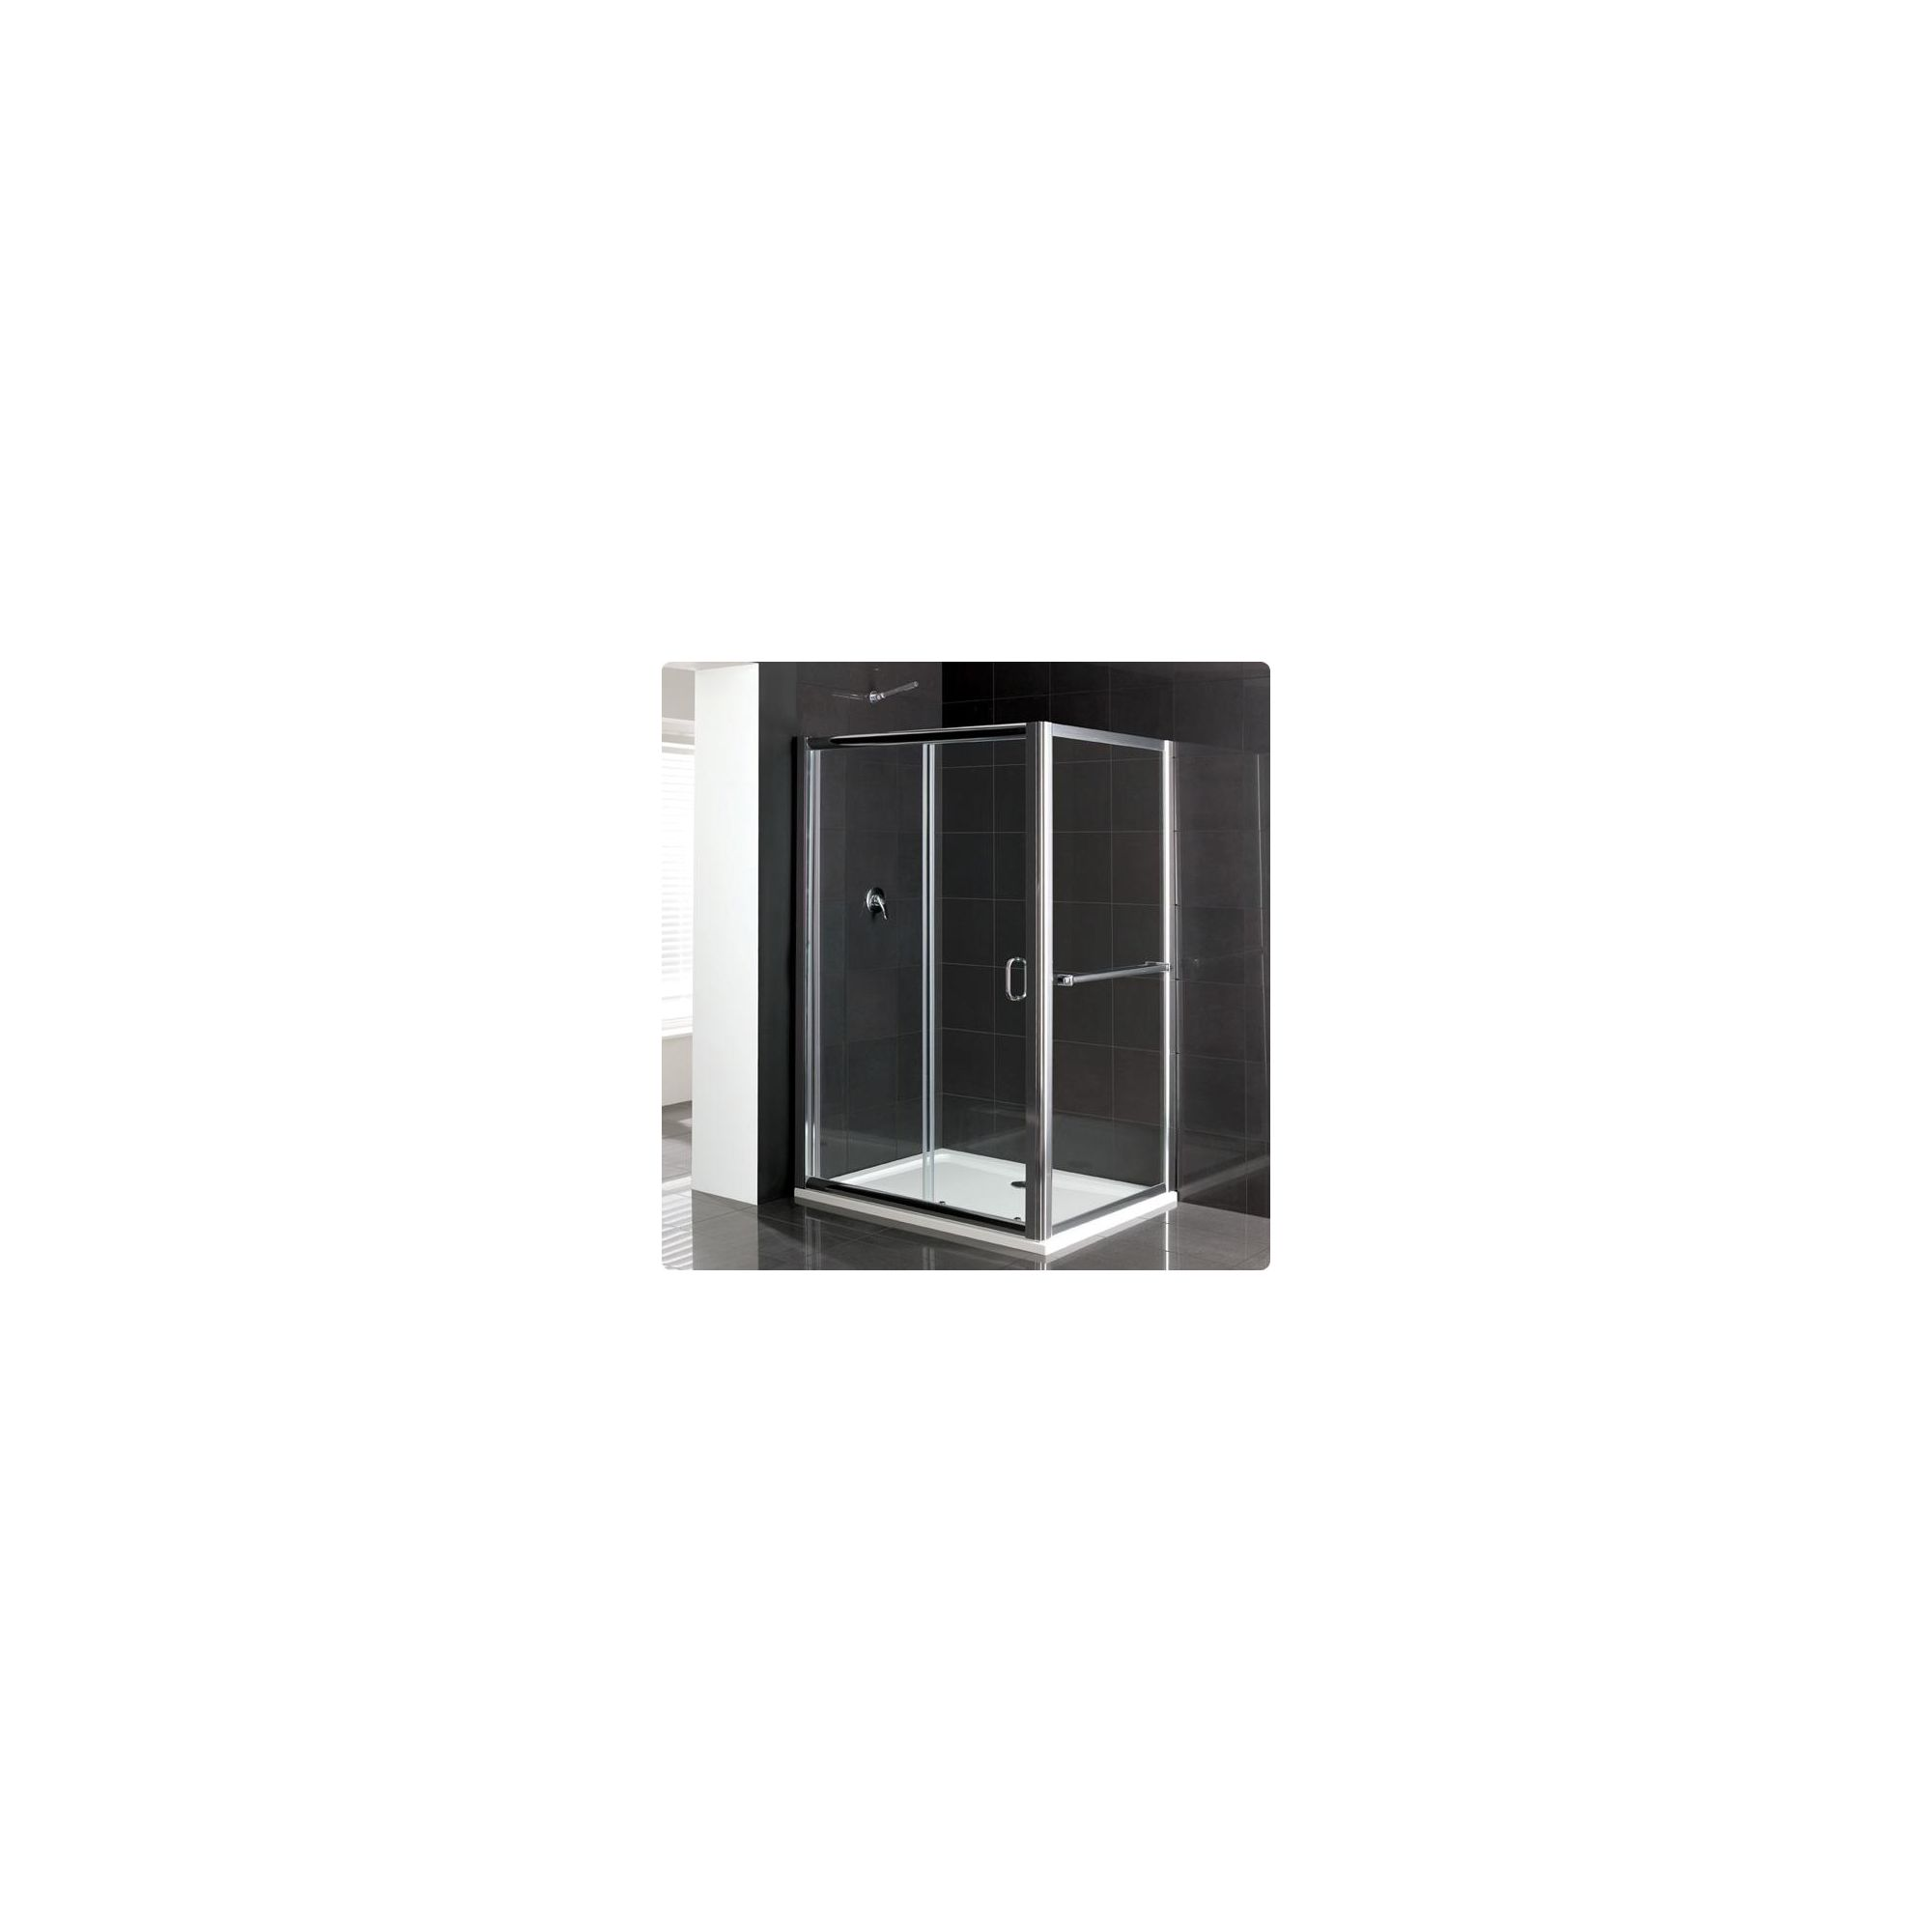 Duchy Elite Silver Sliding Door Shower Enclosure, 1400mm x 800mm, Standard Tray, 6mm Glass at Tesco Direct